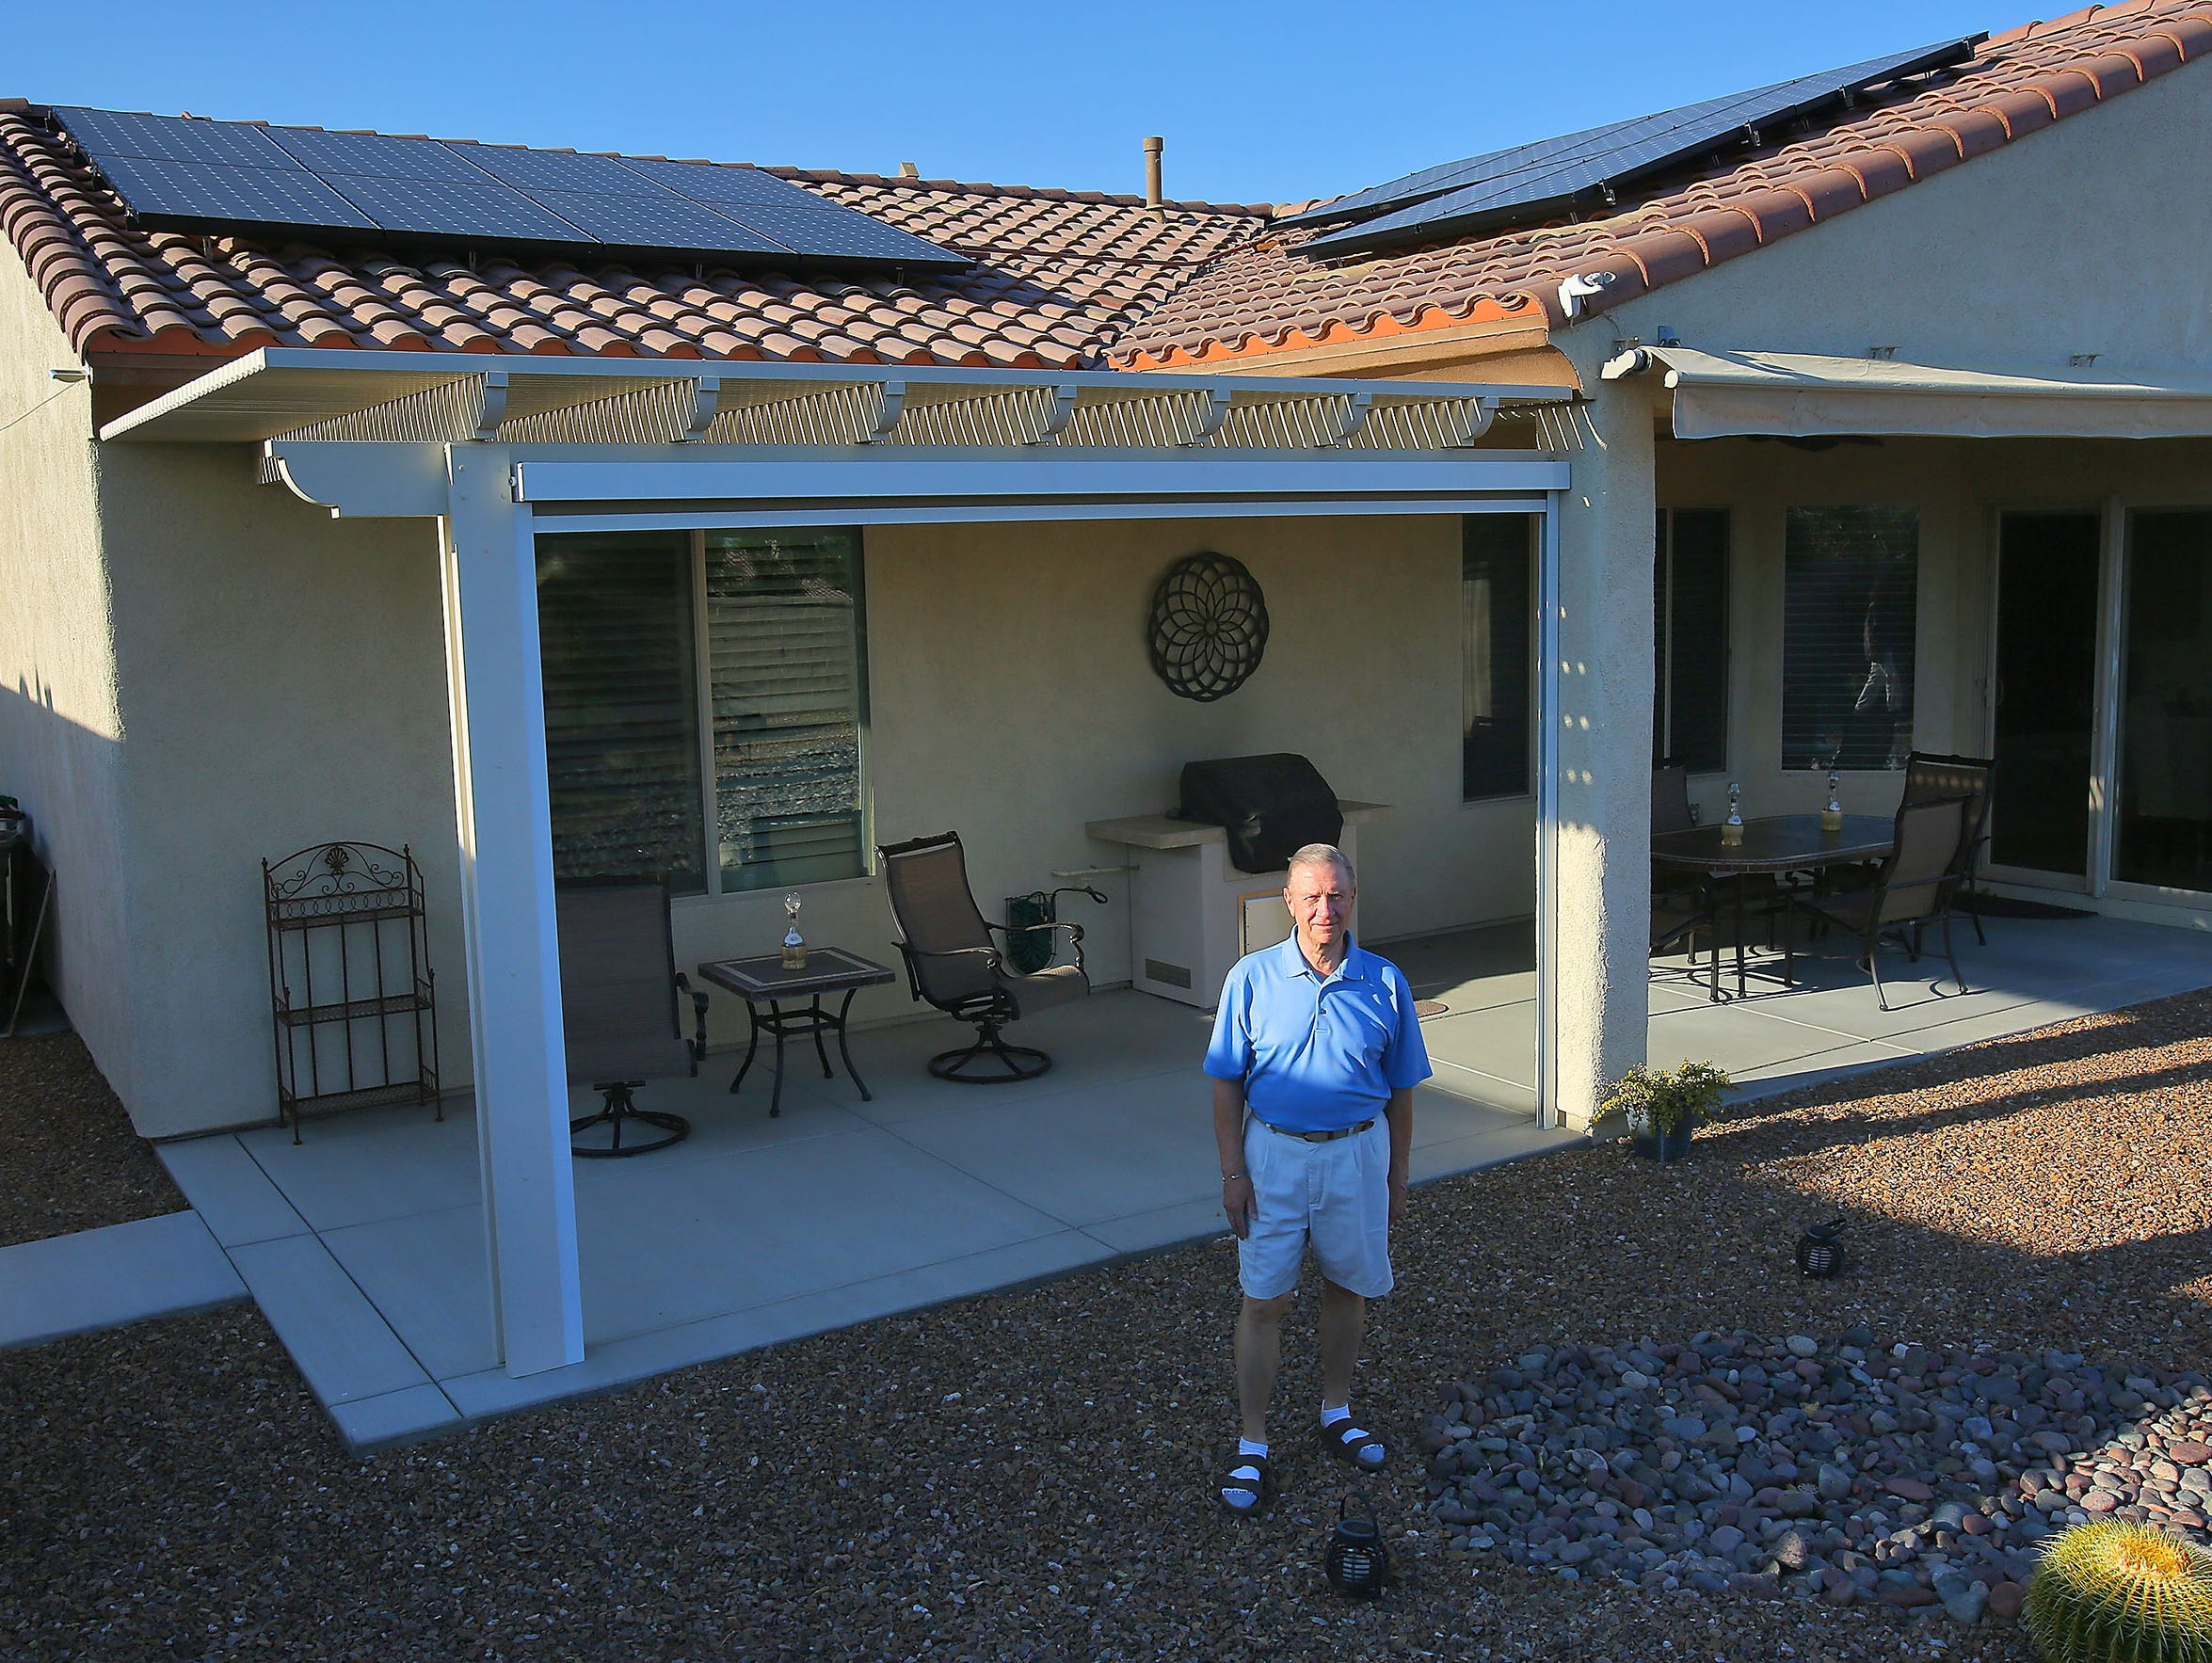 Indio resident Paul Nelson was stuck in limbo for several months in 2016, after the Imperial Irrigation District abruptly closed net metering to new customers, making it unclear whether Nelson and many others would be able to afford their newly installed solar panels.